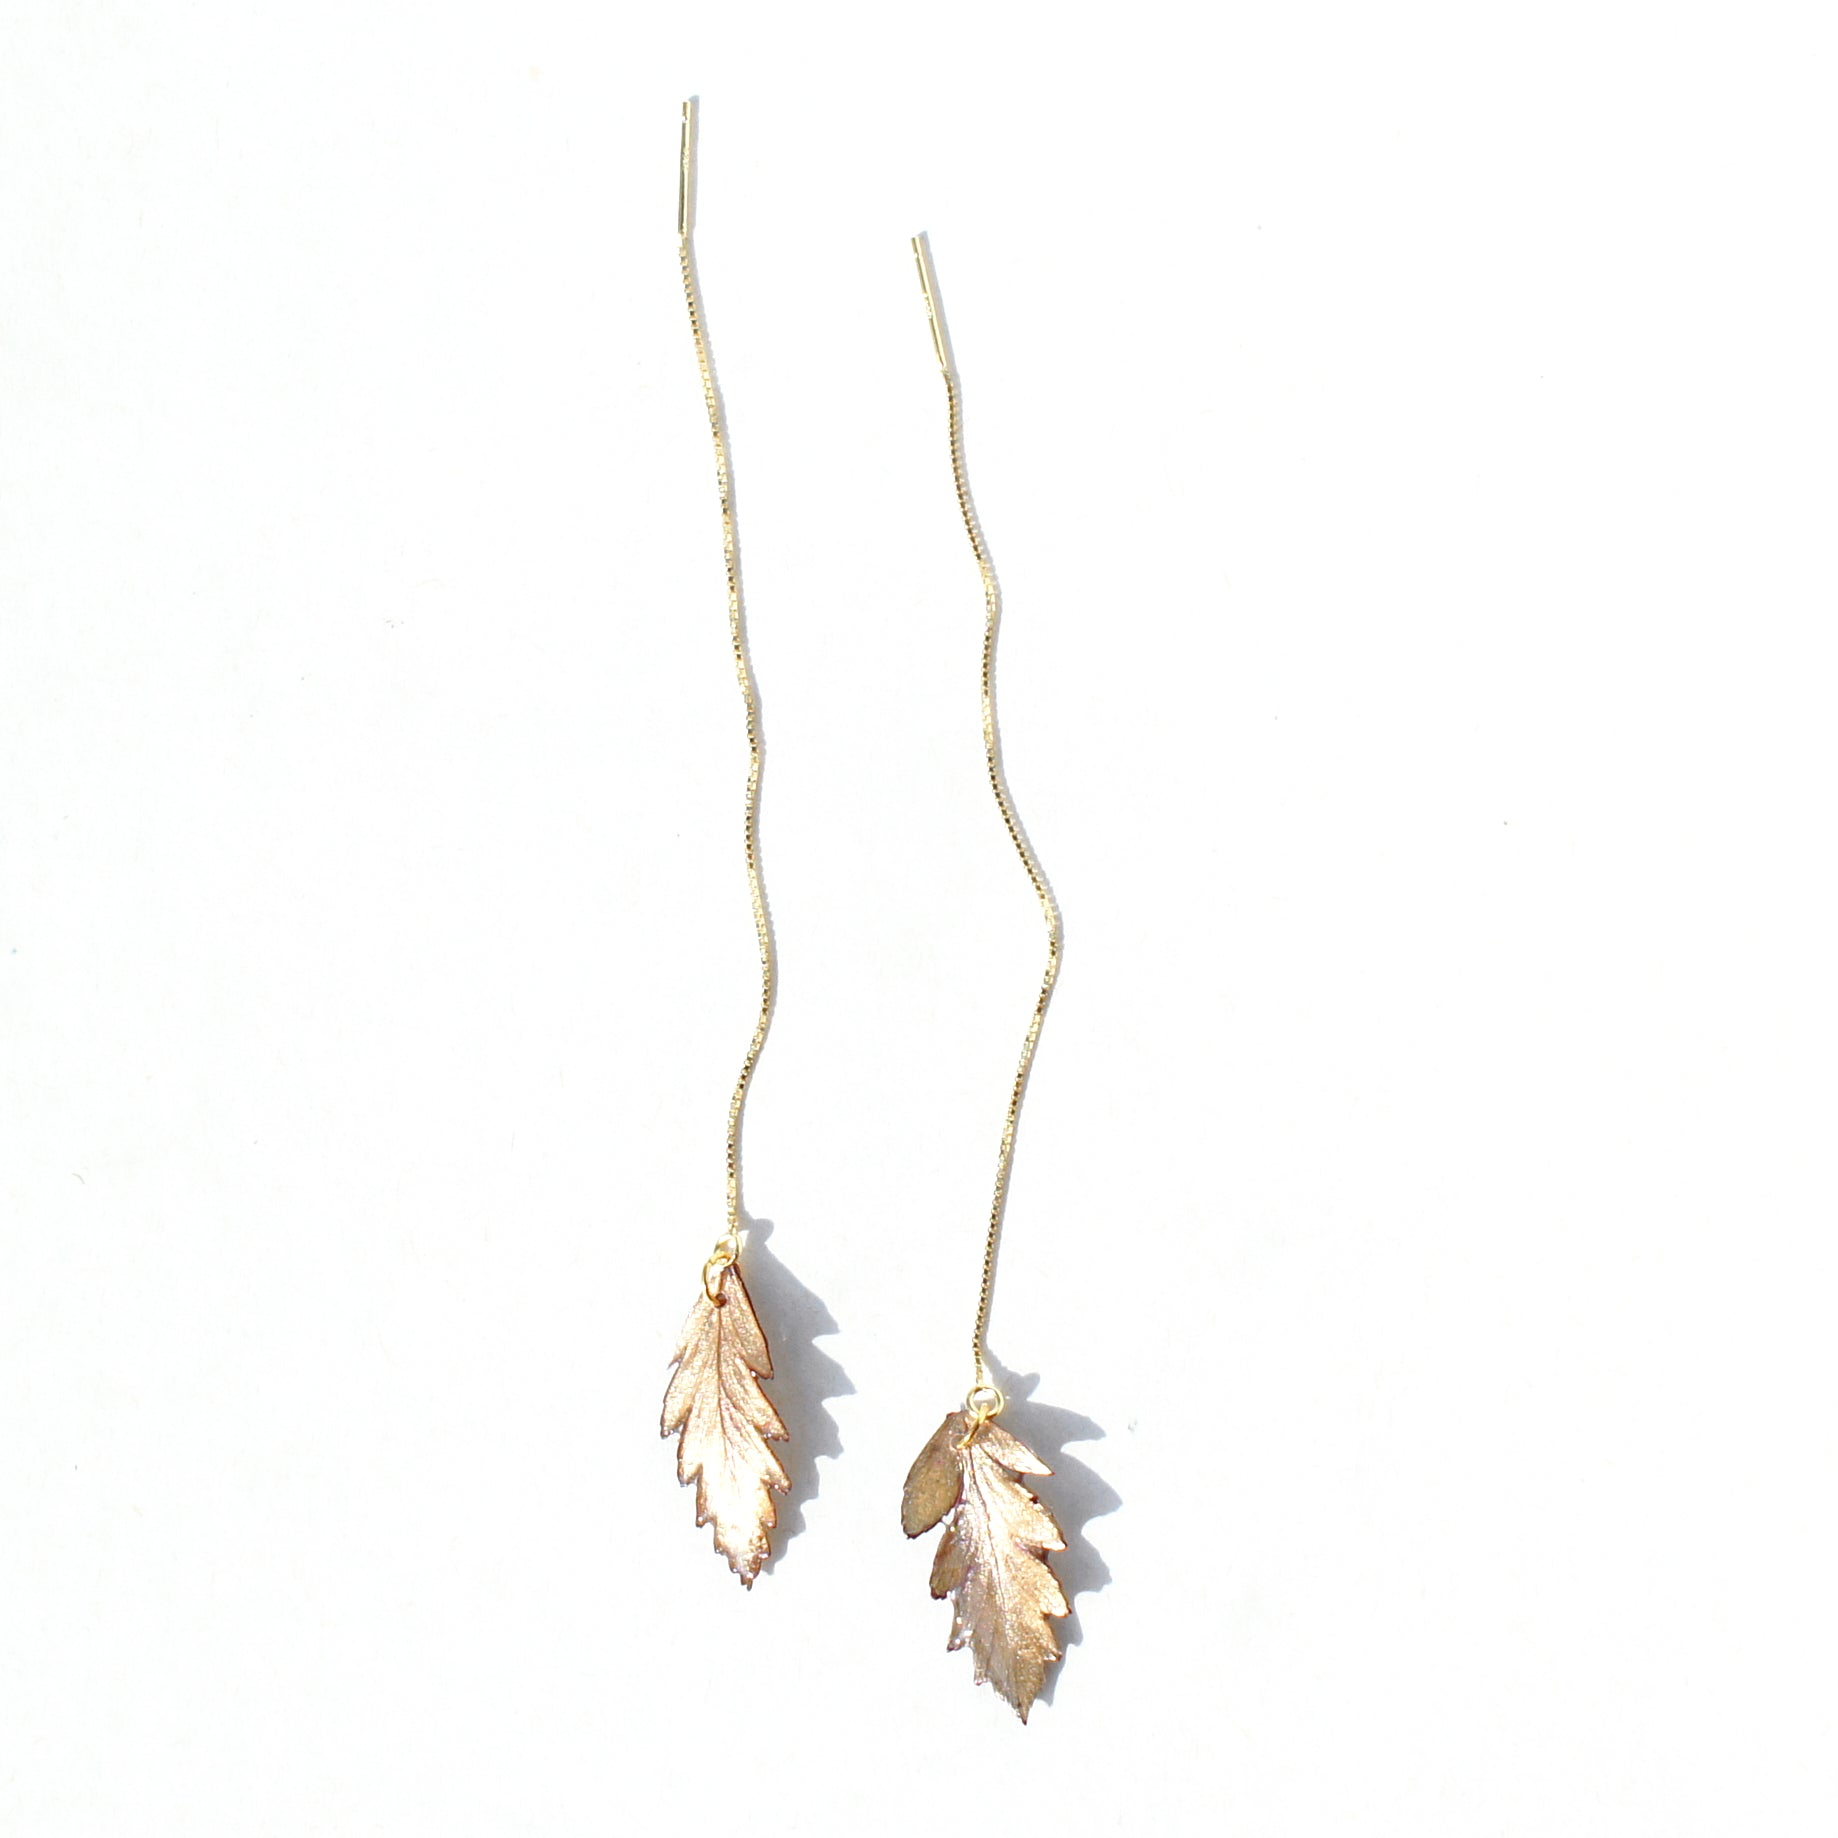 *REAL LEAVES* Be-leaf Leaf Drop 18k Gold Vermeil Threader Earring(s)